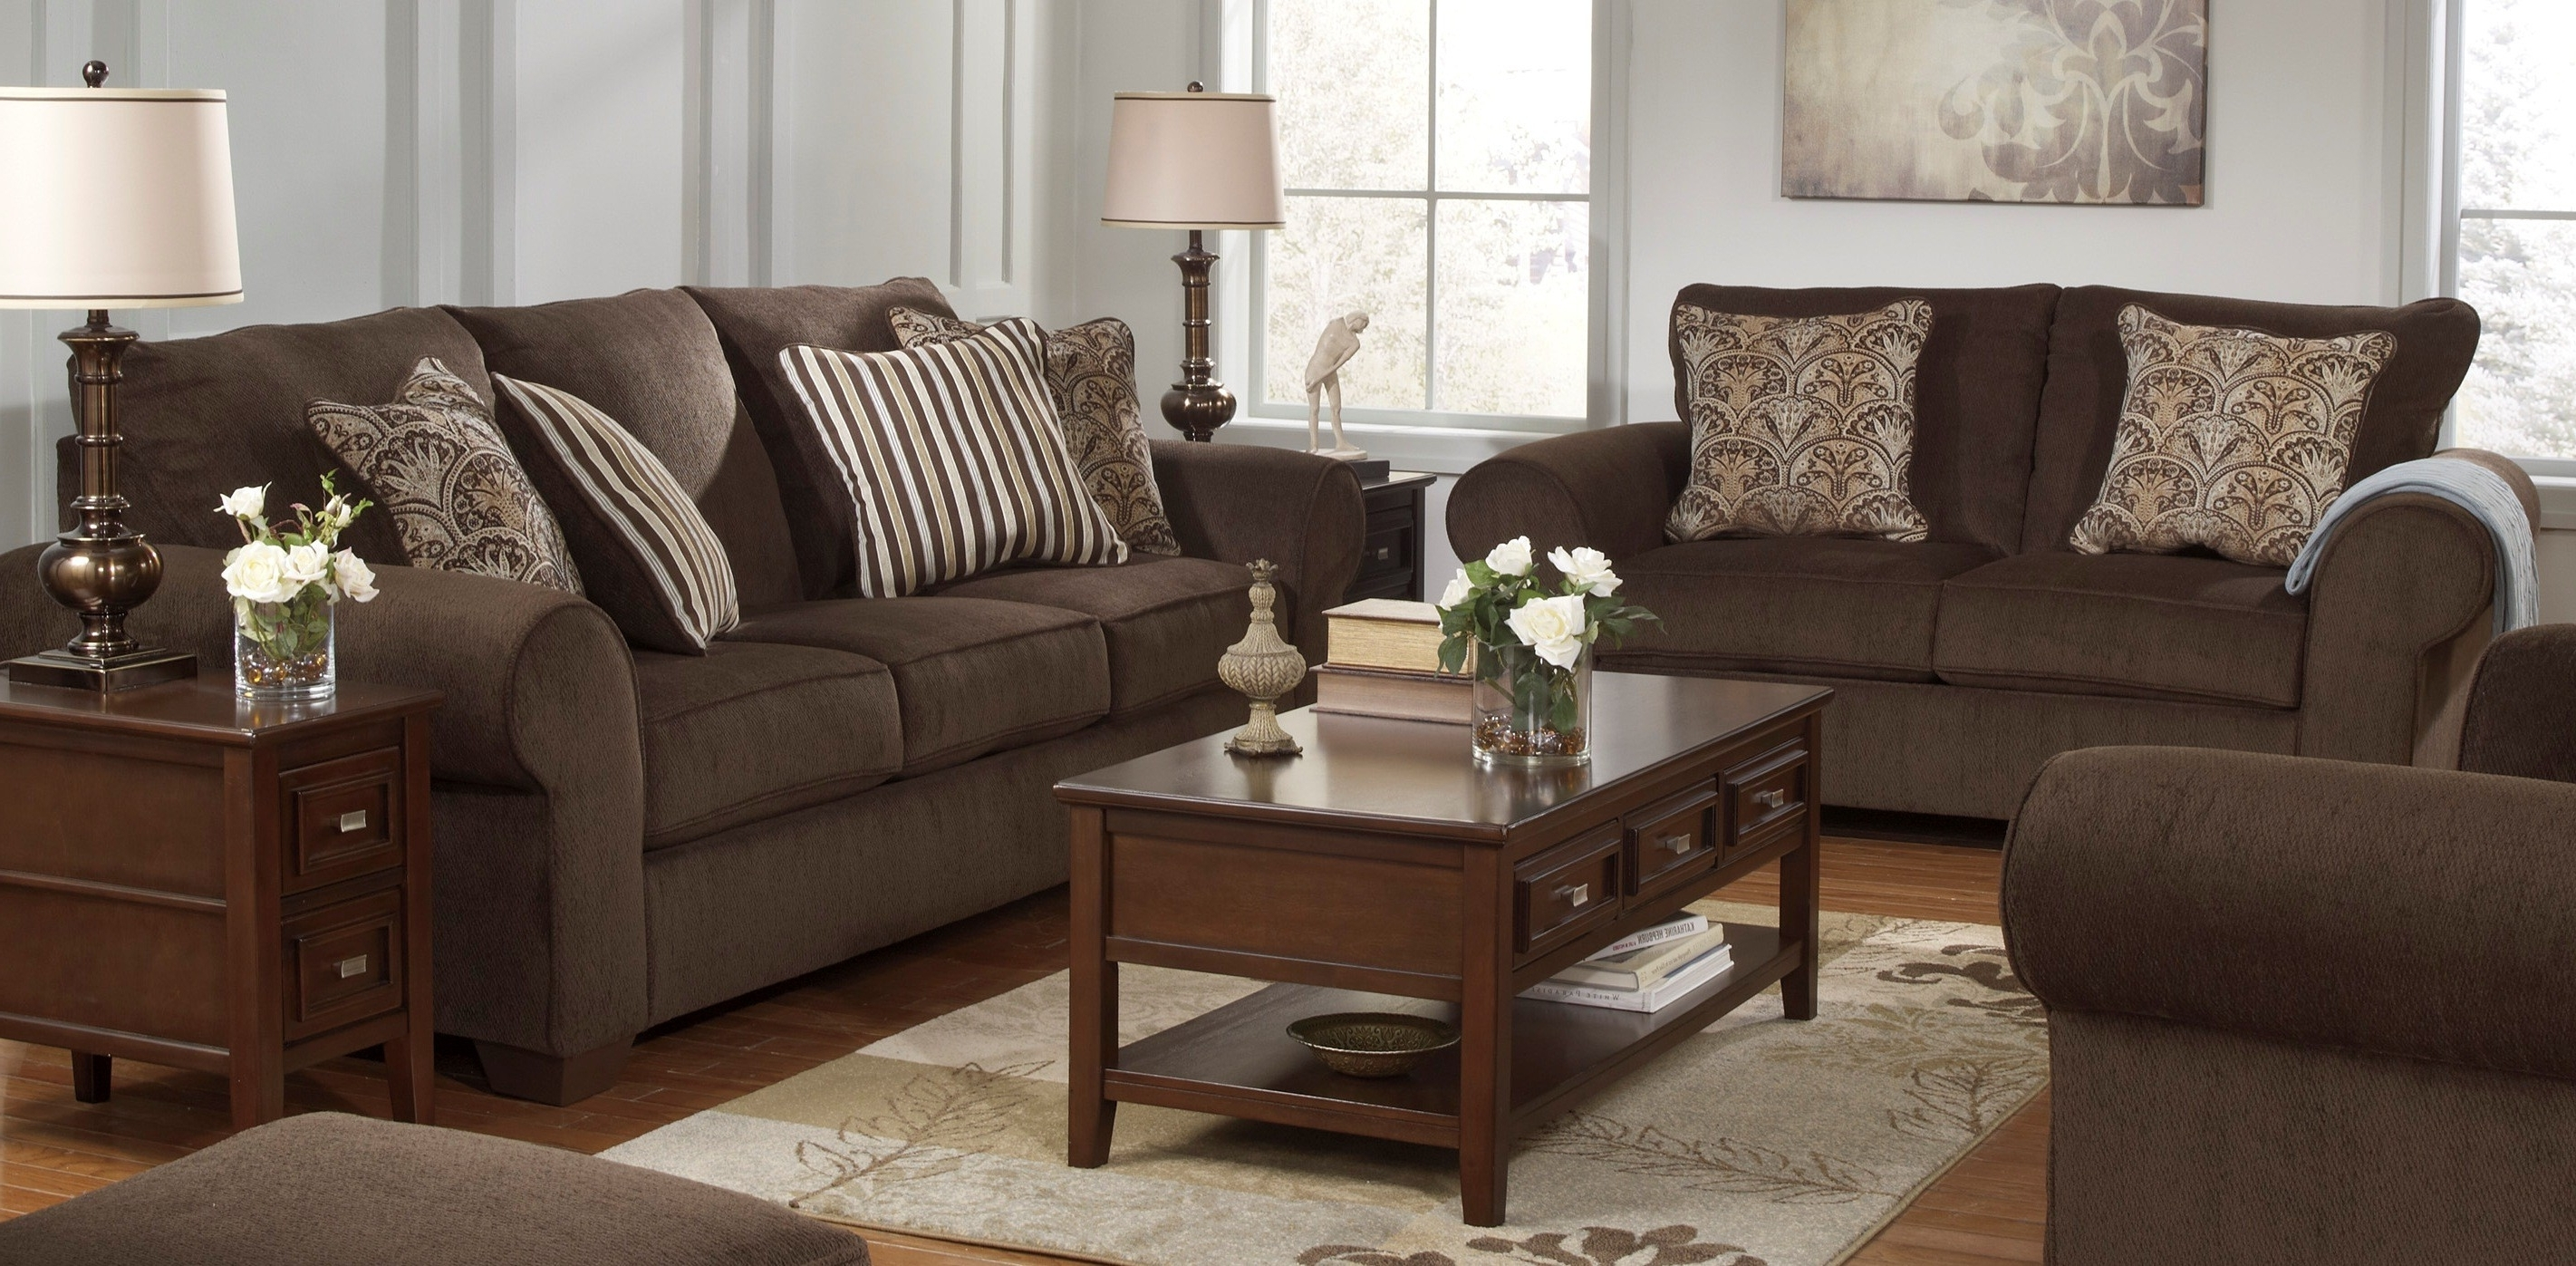 Greenville Nc Sectional Sofas Regarding Most Popular 10 Luxury Ashley Furniture Greenville Nc (View 10 of 15)